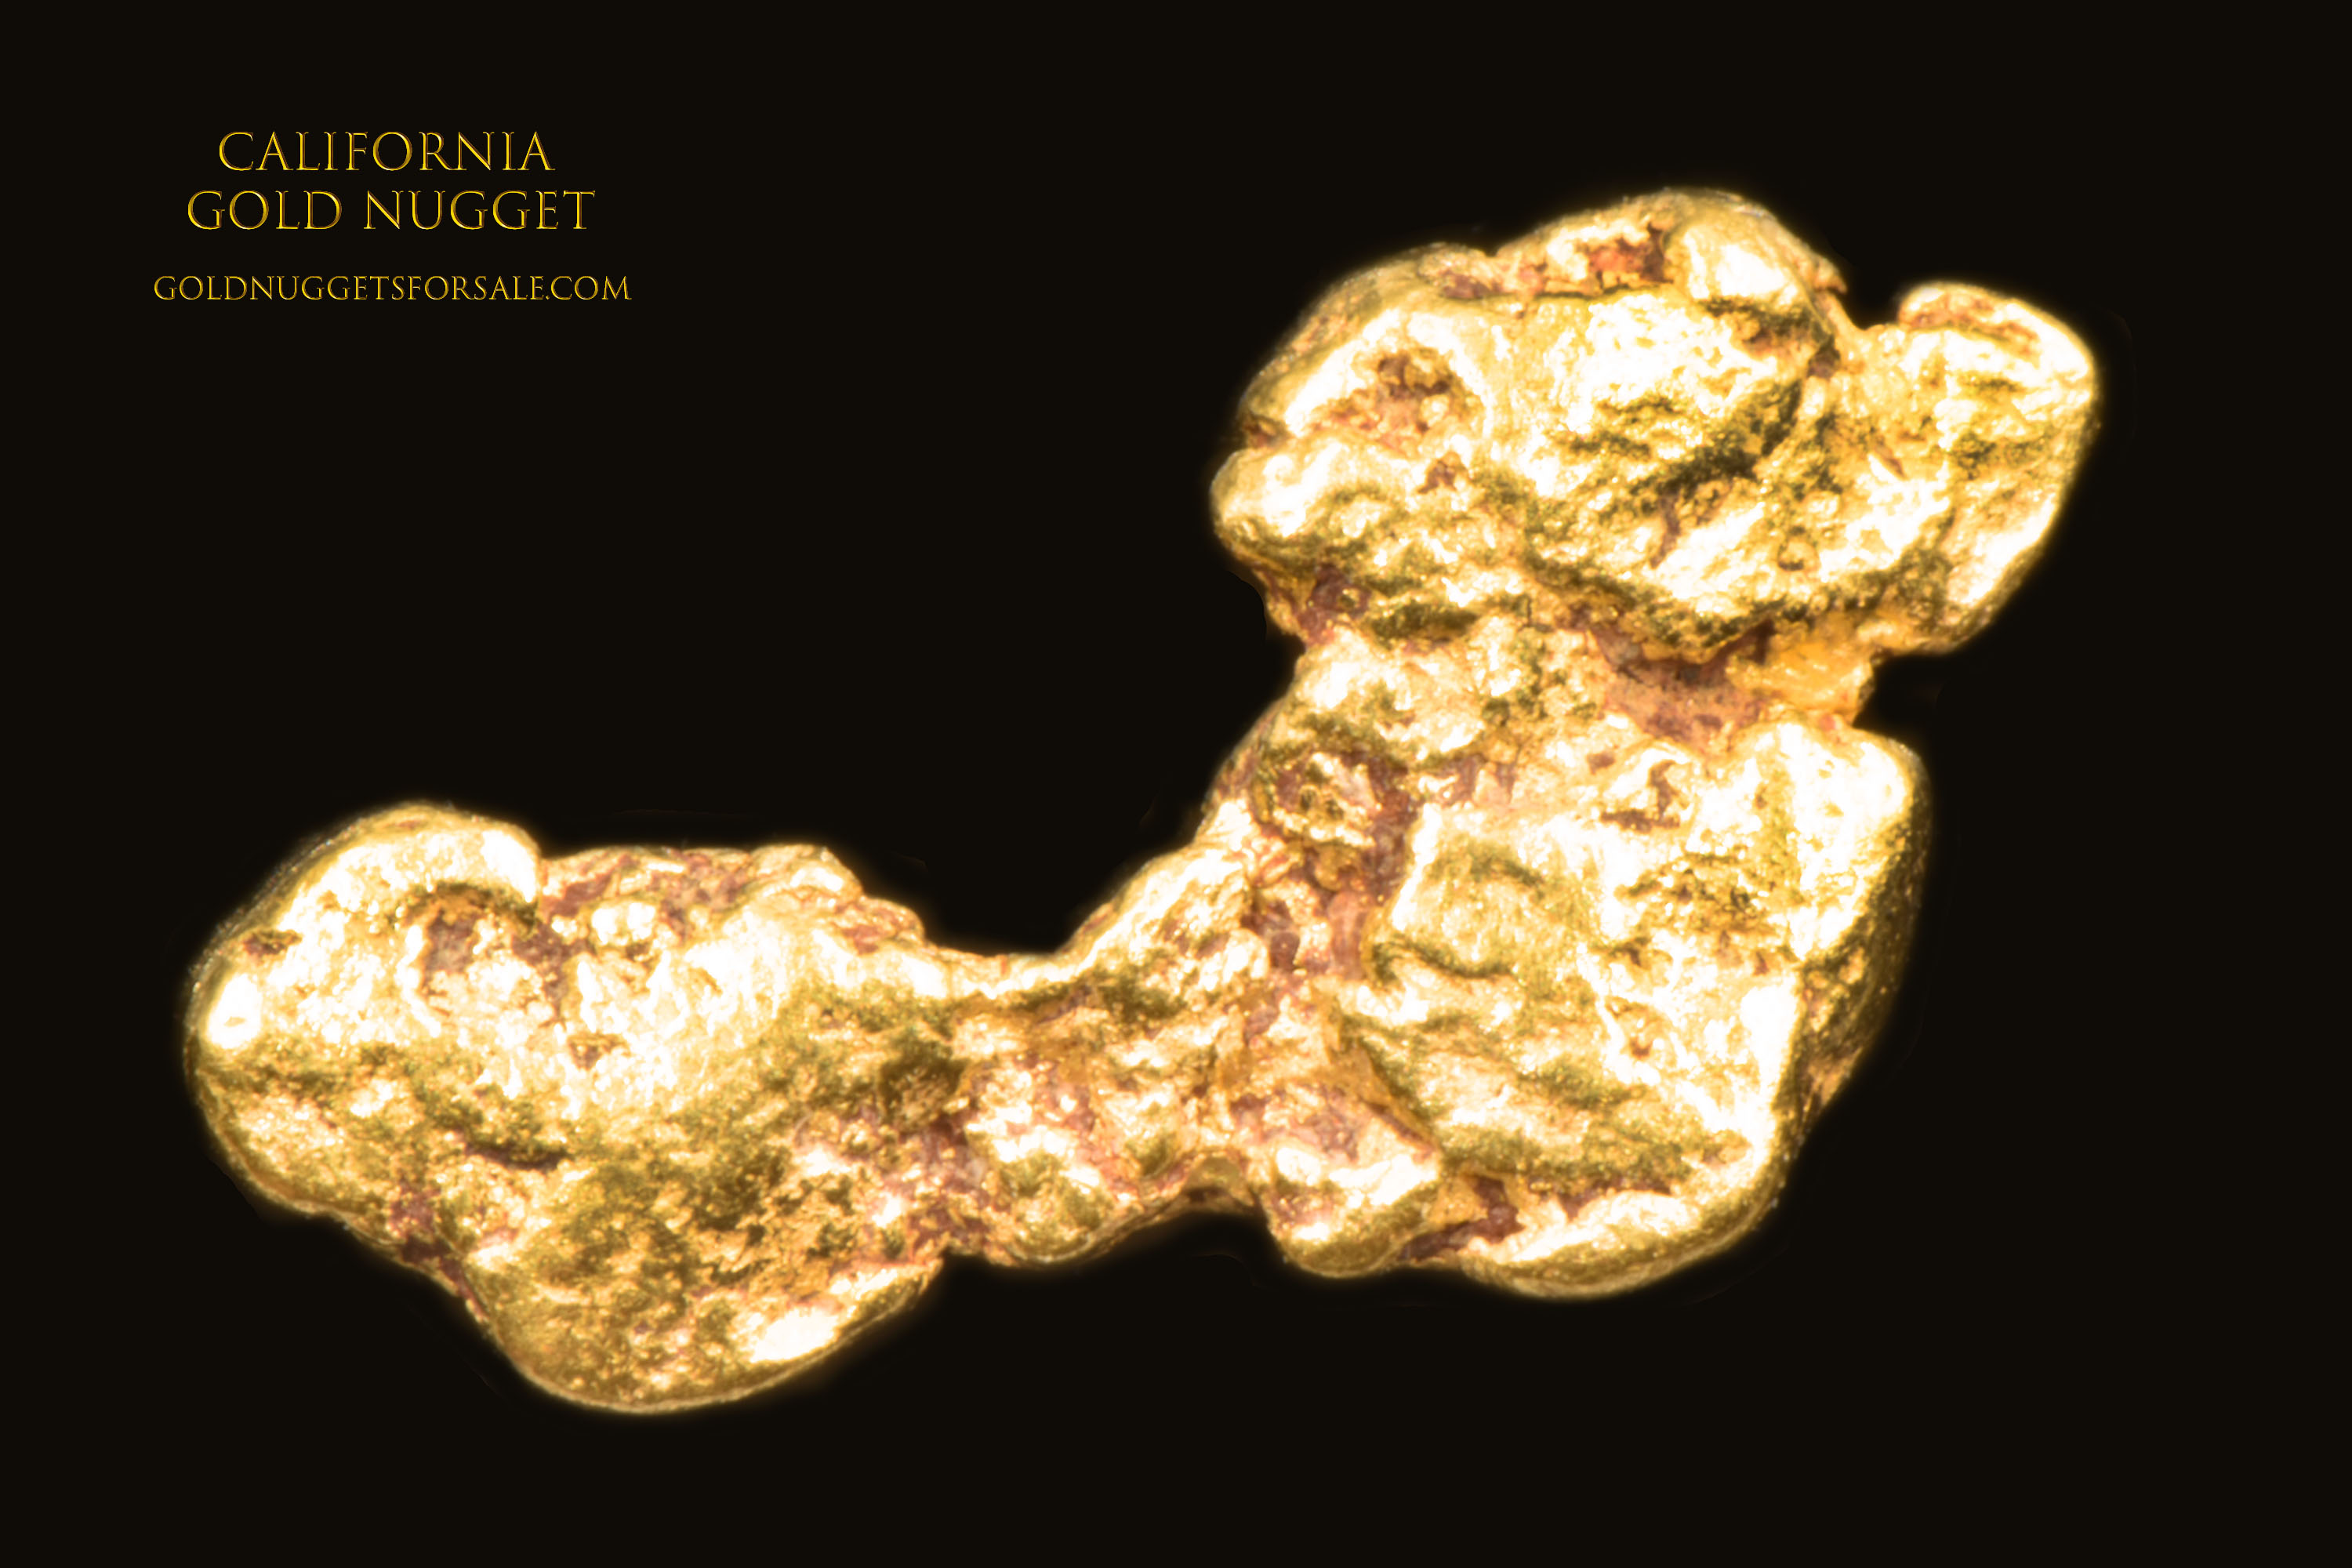 Unusual Shape, Great Color - Gold Nugget From California